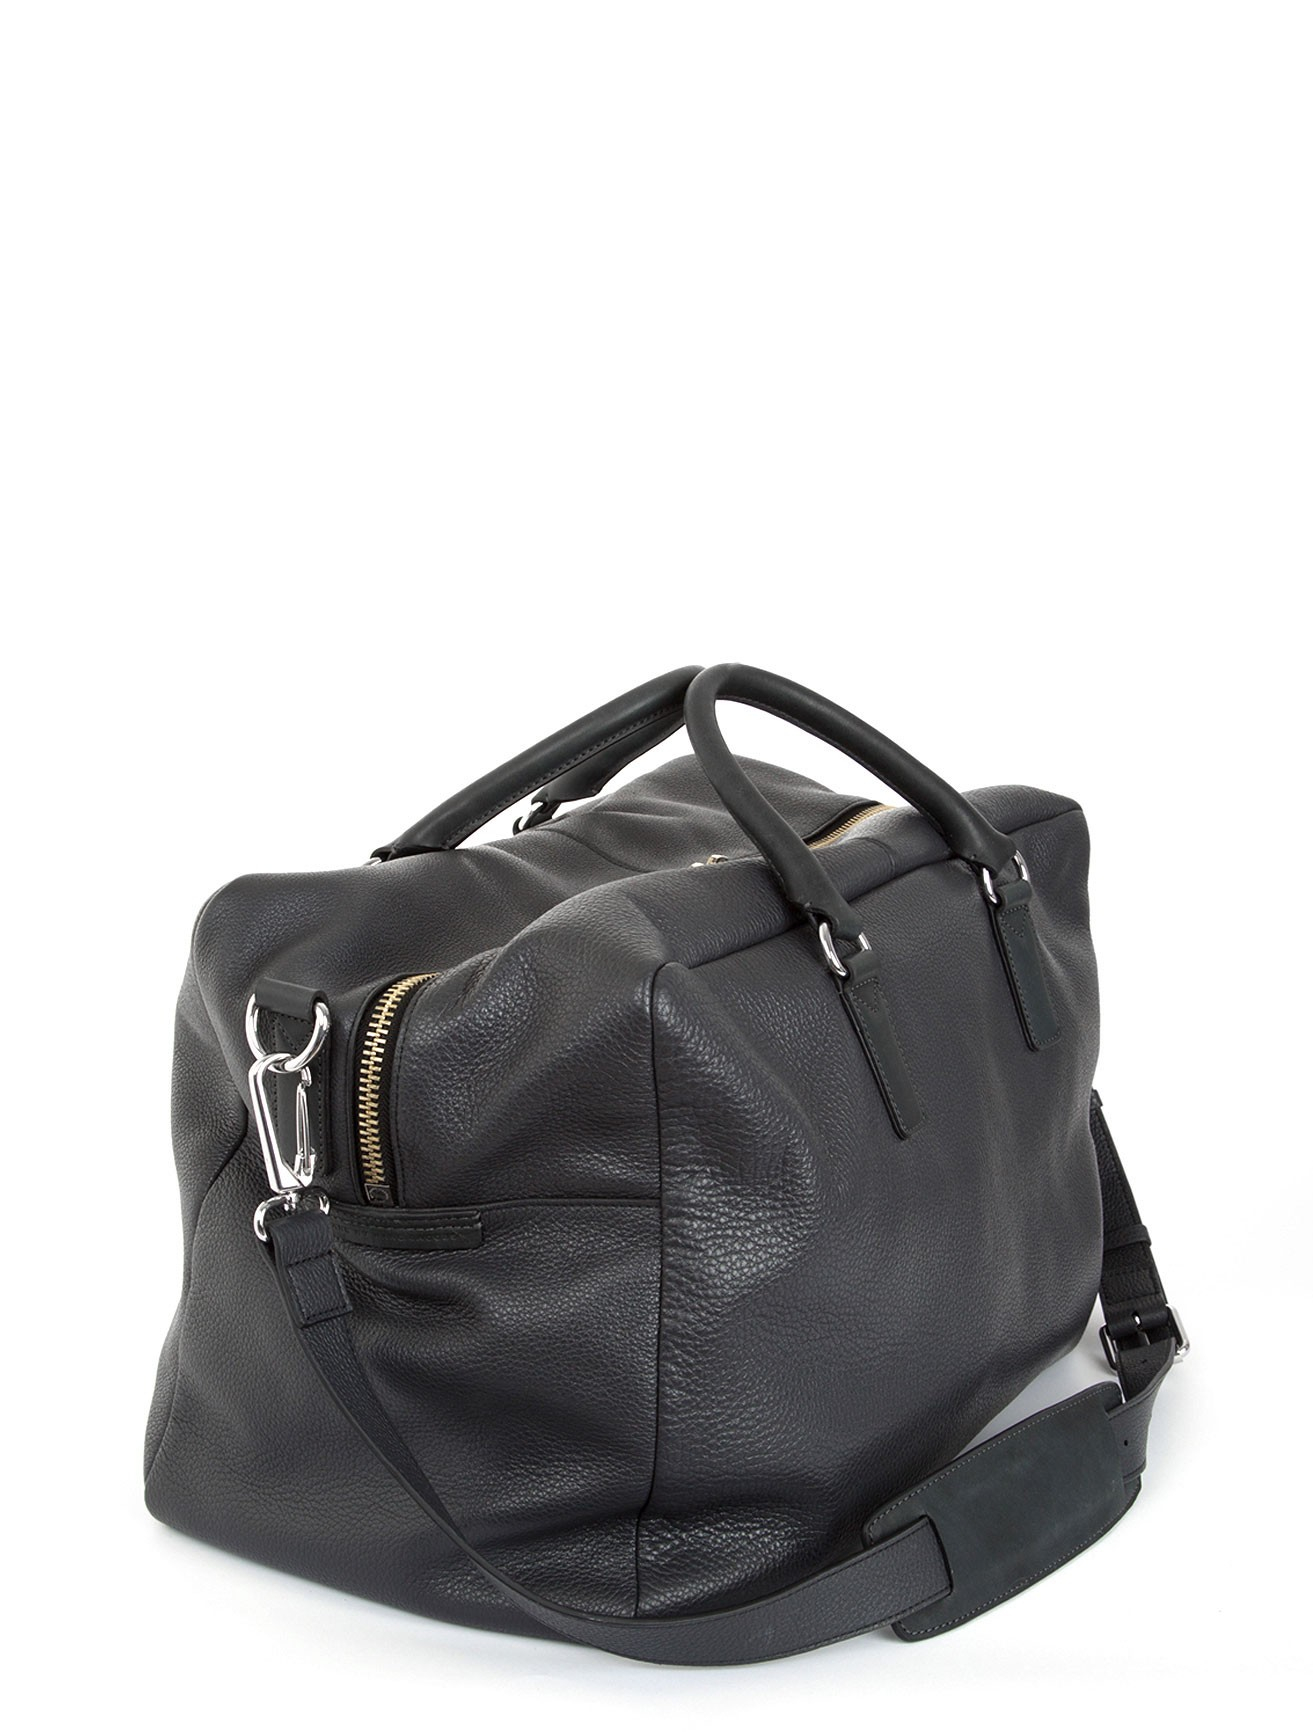 Marc by marc jacobs The Weekender Bag in Black for Men | Lyst